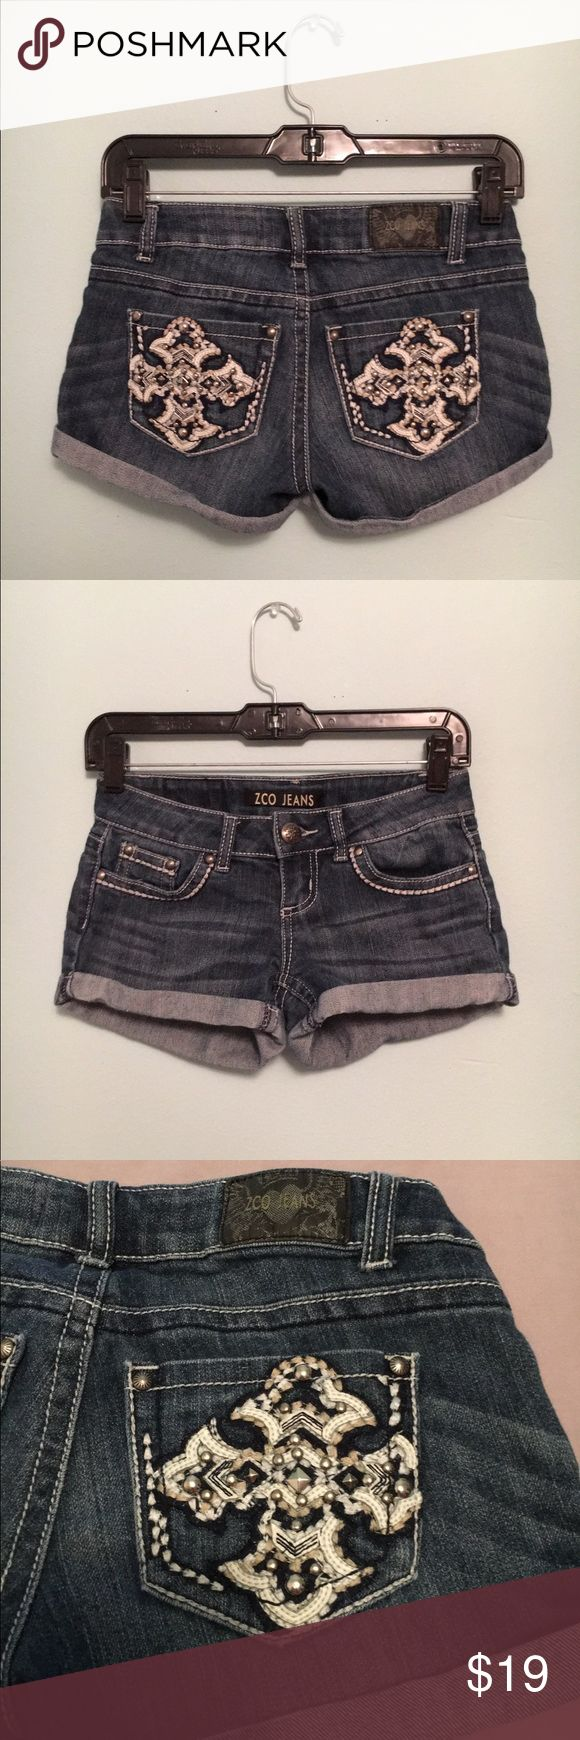 ZCO jean short shorts Like new ZCO Jeans brand shorts with studs and cross design on back pockets. Size 0.  #shorts #shortshorts #zcobrand #zcojeans #missme #missmejeans #missmeshorts  #thebuckle #buckle #bucklejeans #rustic #country ZCO Shorts Jean Shorts